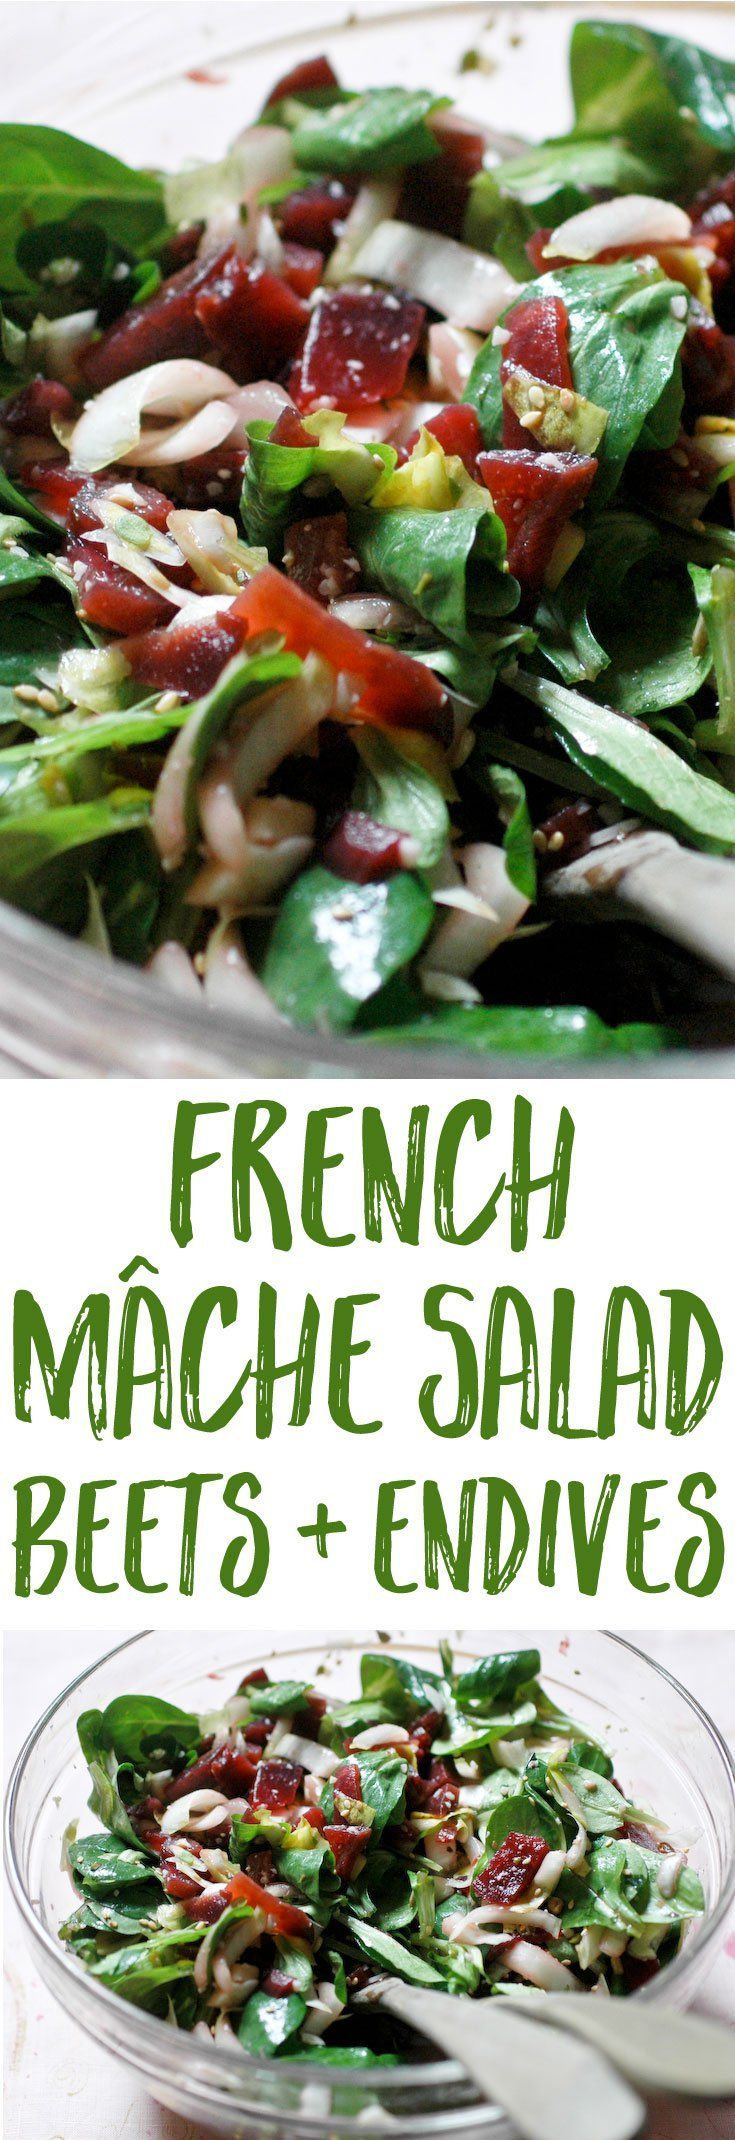 A super French mâche salad recipe to use lamb's ear lettuce, with beets and endives. A fresh and flavorful way to get your greens in during the colder months!